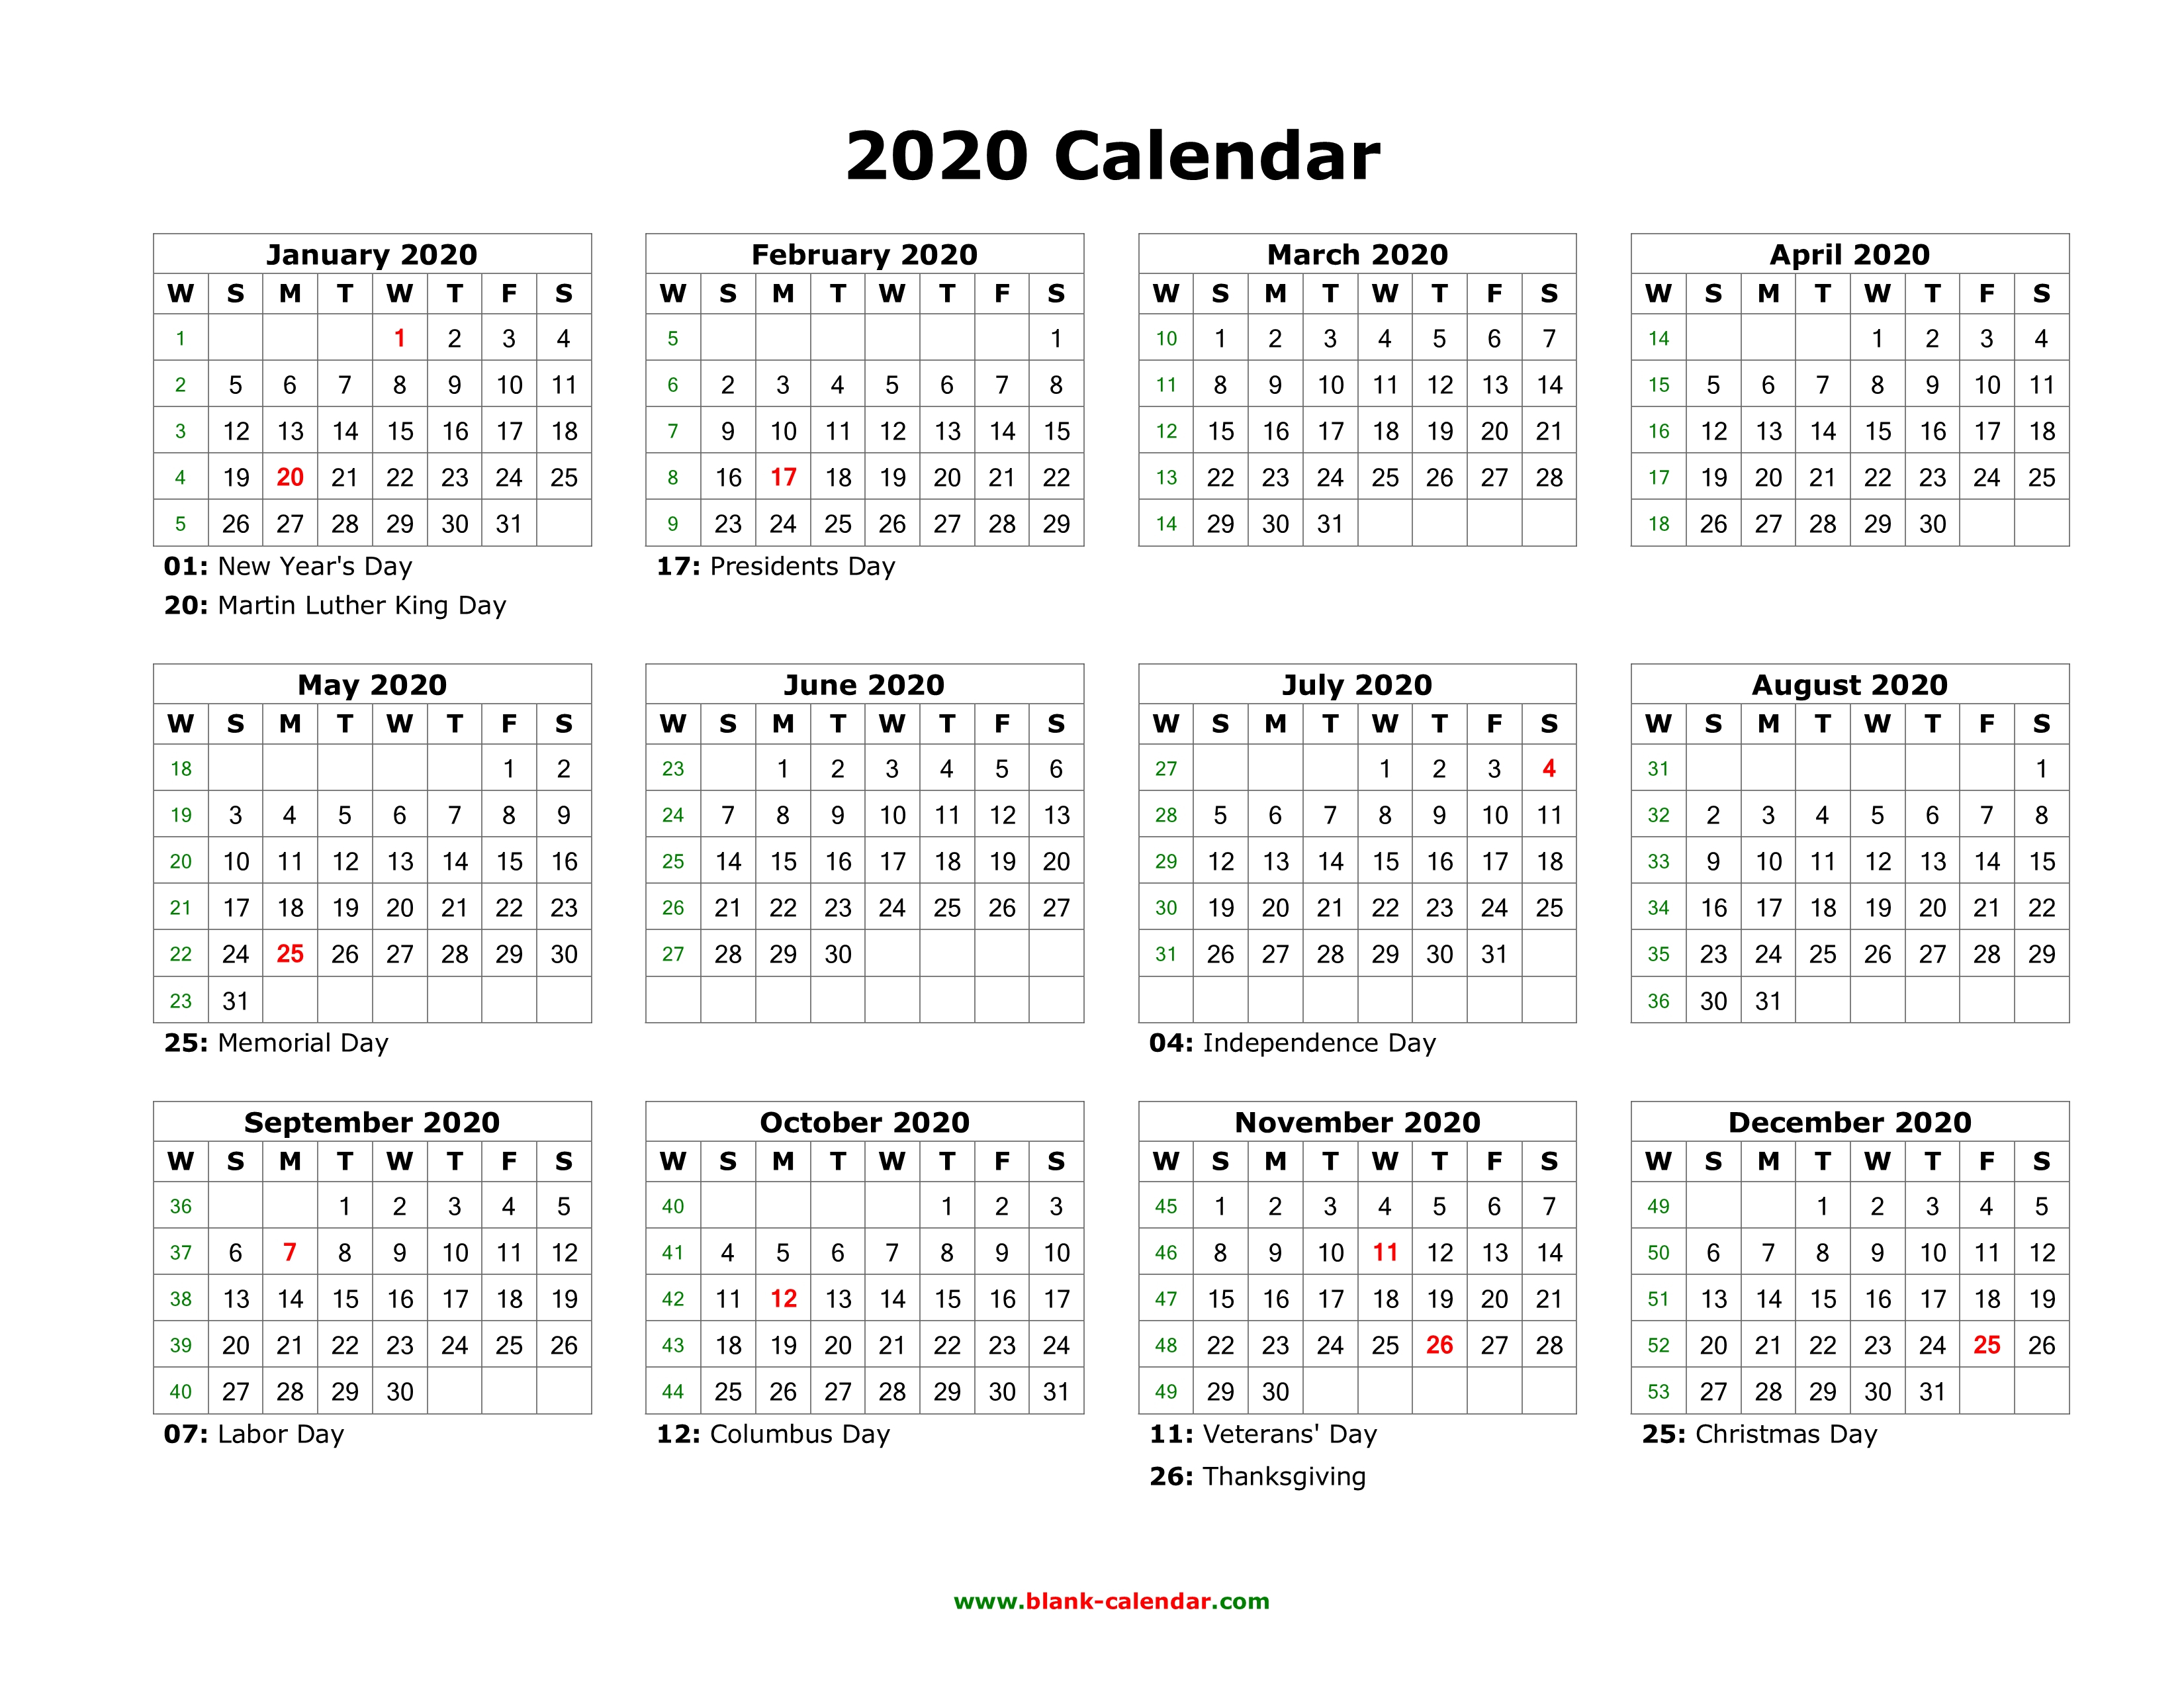 Blank Calendar 2020 | Free Download Calendar Templates within Free Printable 2020 Calendar With Space To Write